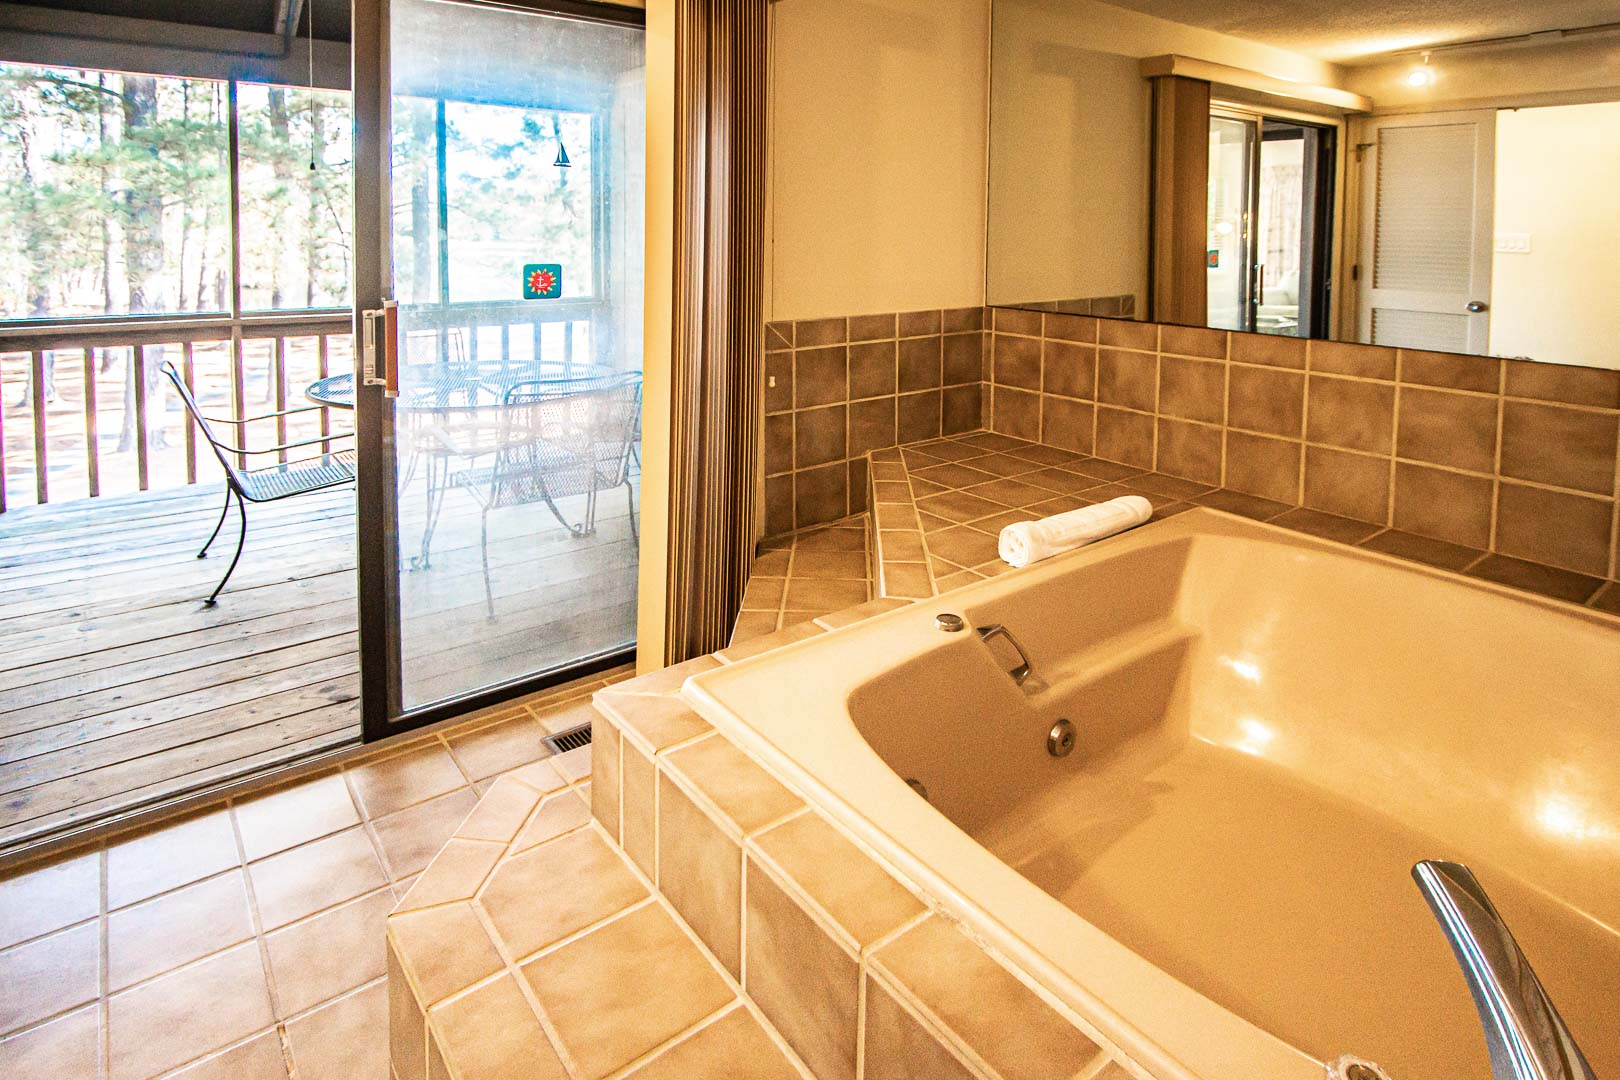 A relaxing Jacuzzi tub in the units at VRI's Sandcastle Cove in New Bern, North Carolina.